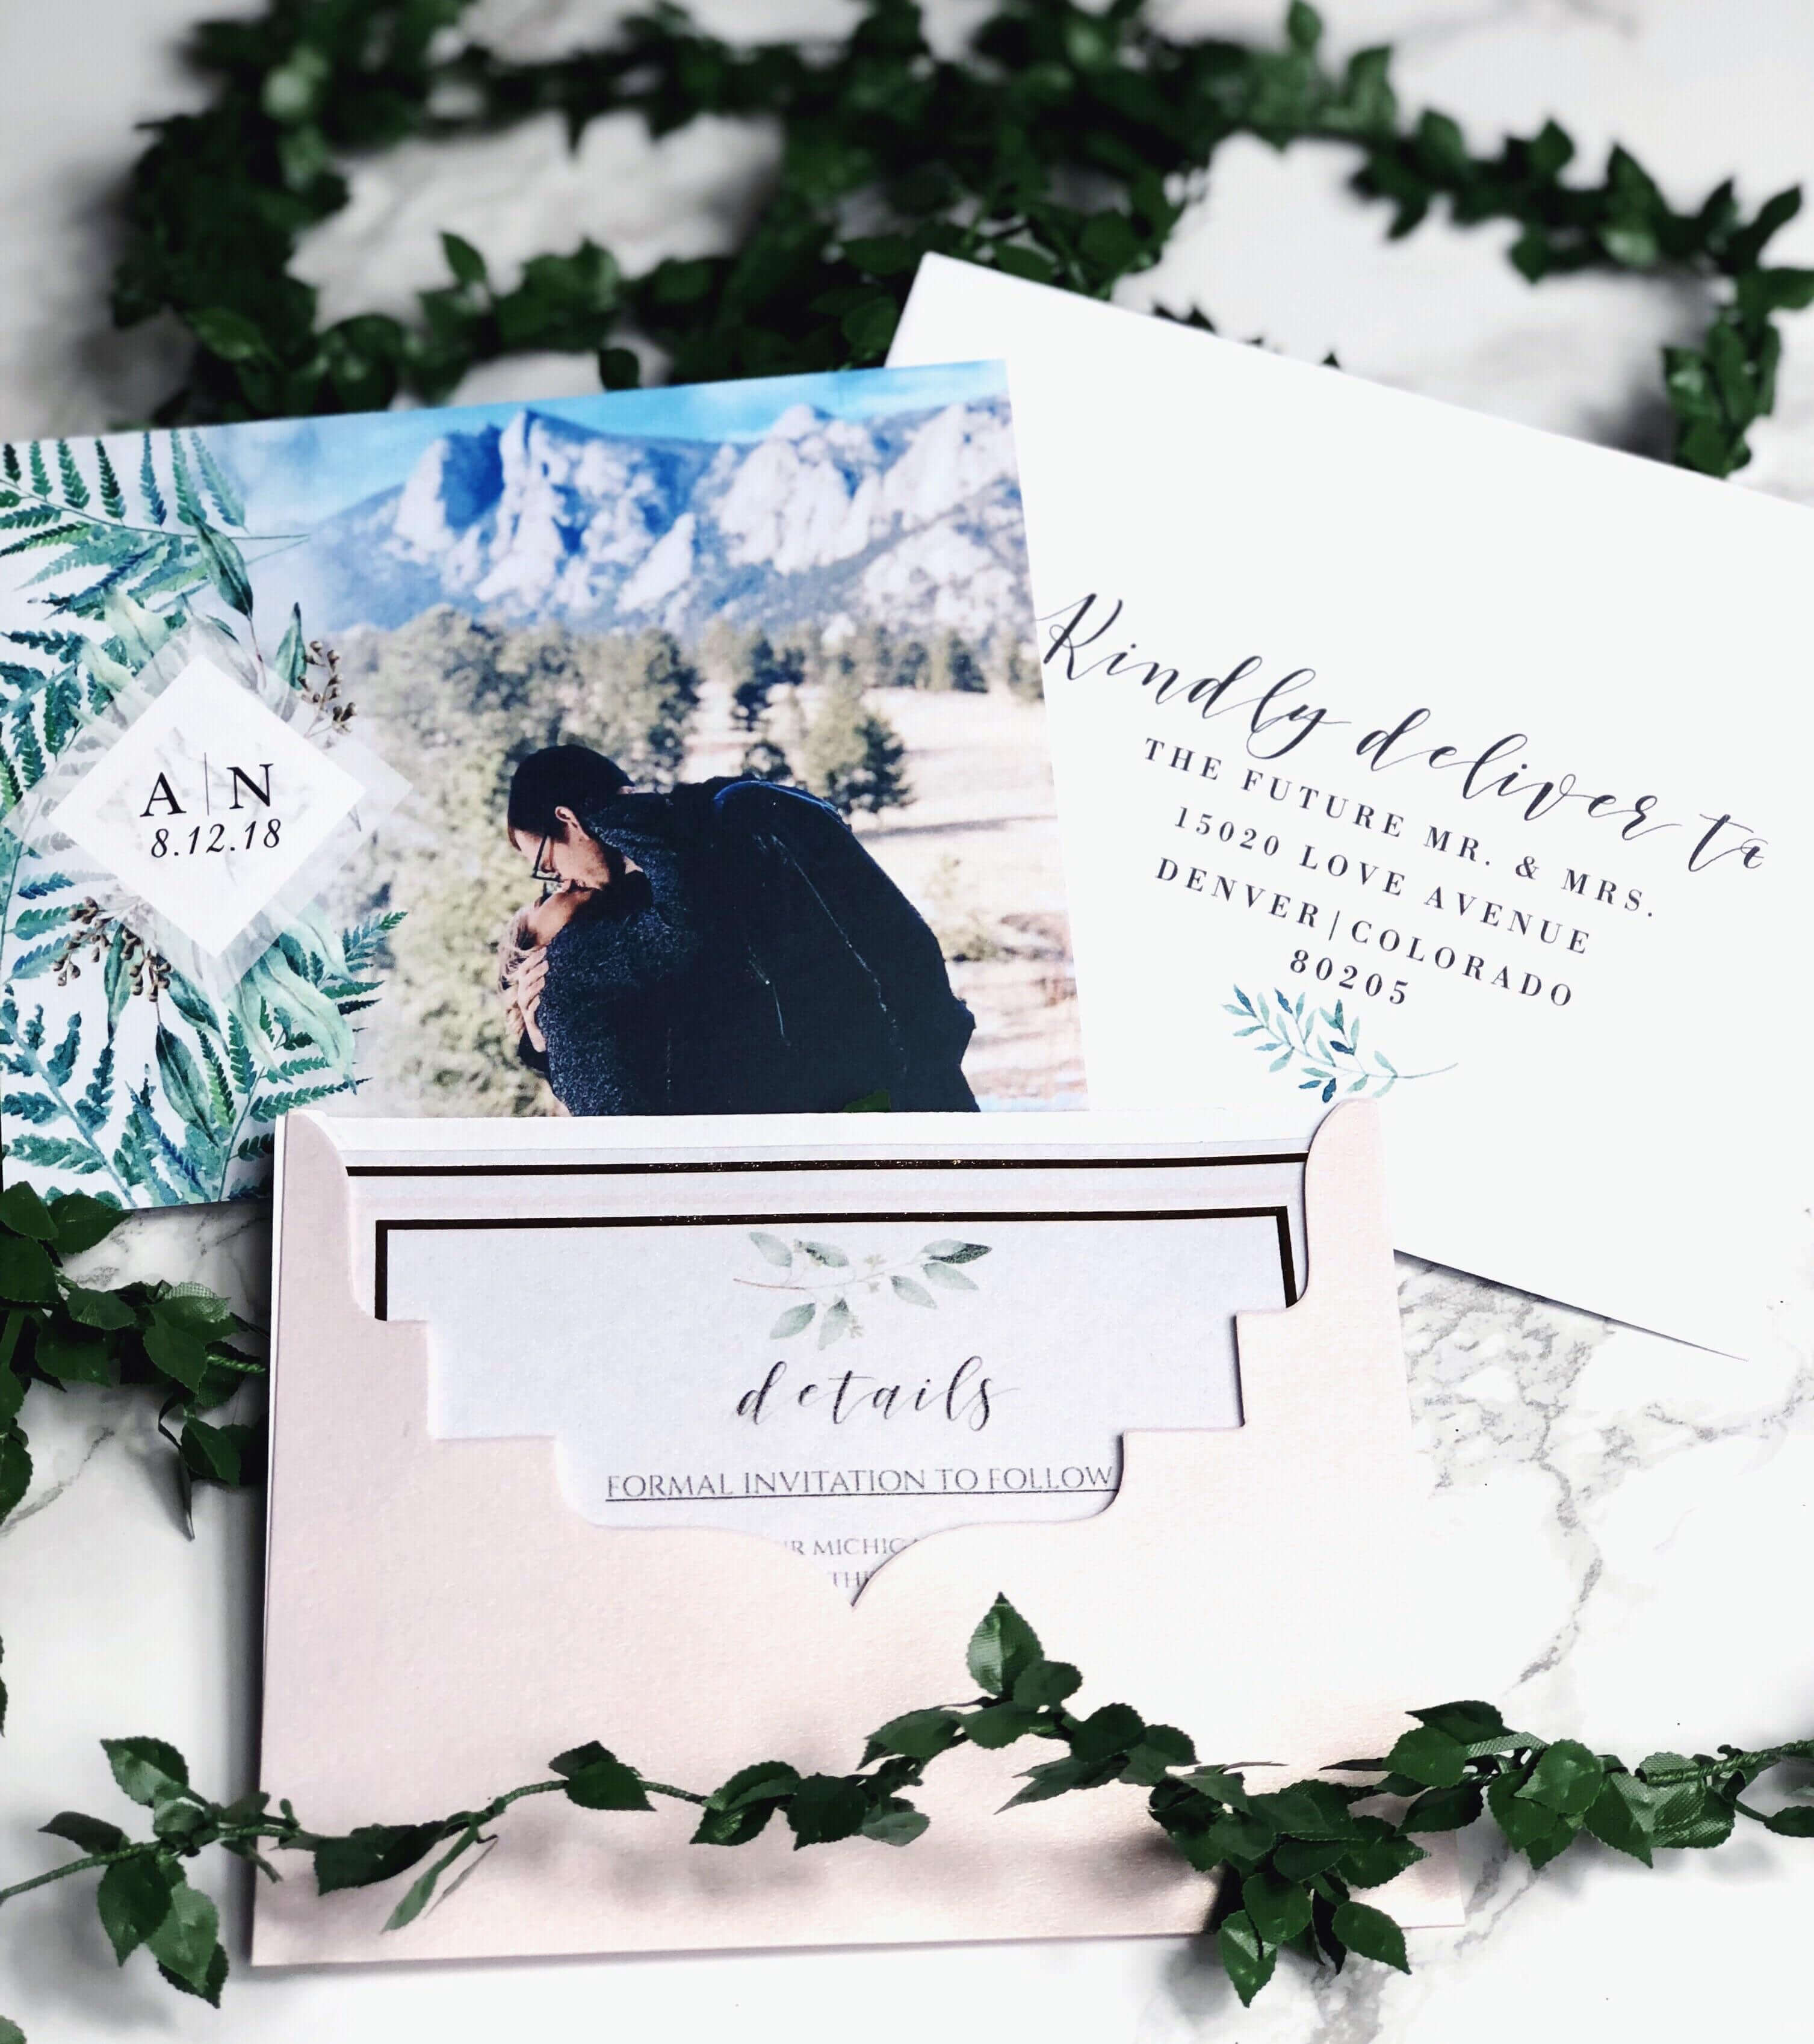 Our Save The Dates! Photo From Vistaprint, Envelope for Michaels Place Card Template